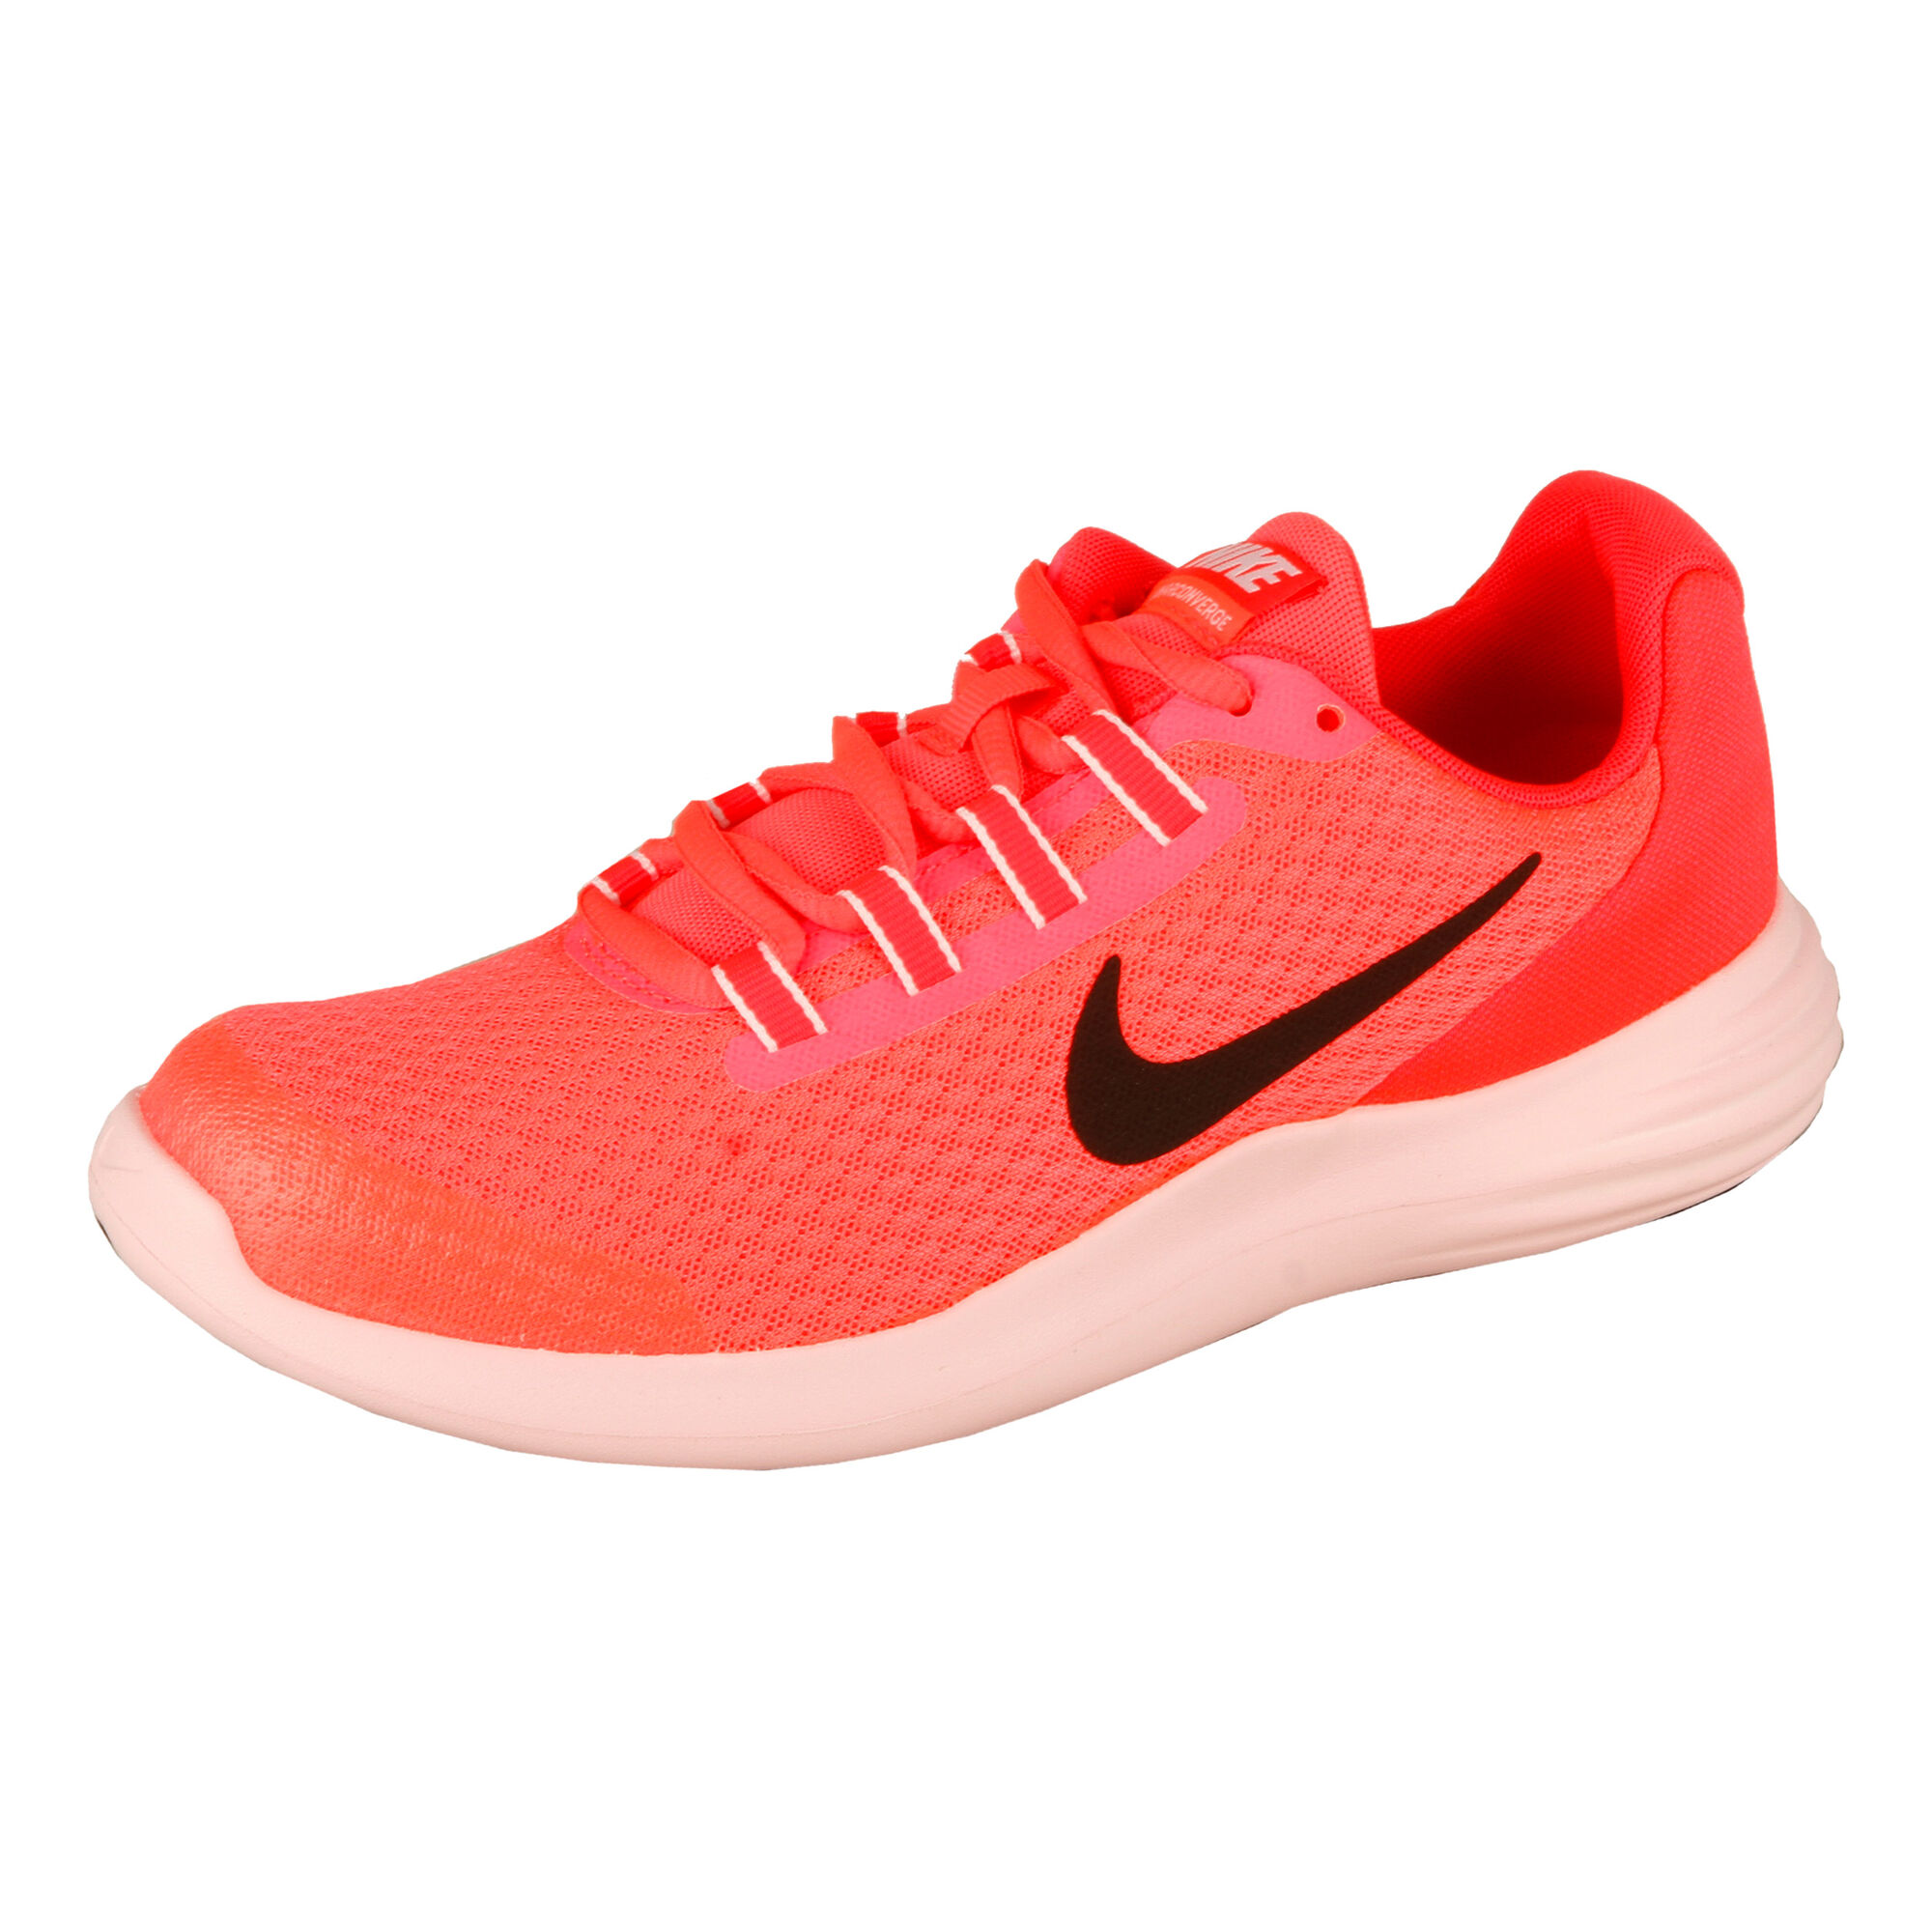 16f09bcfd652 buy Nike Lunar Converge Neutral Running Shoe Kids - Pink